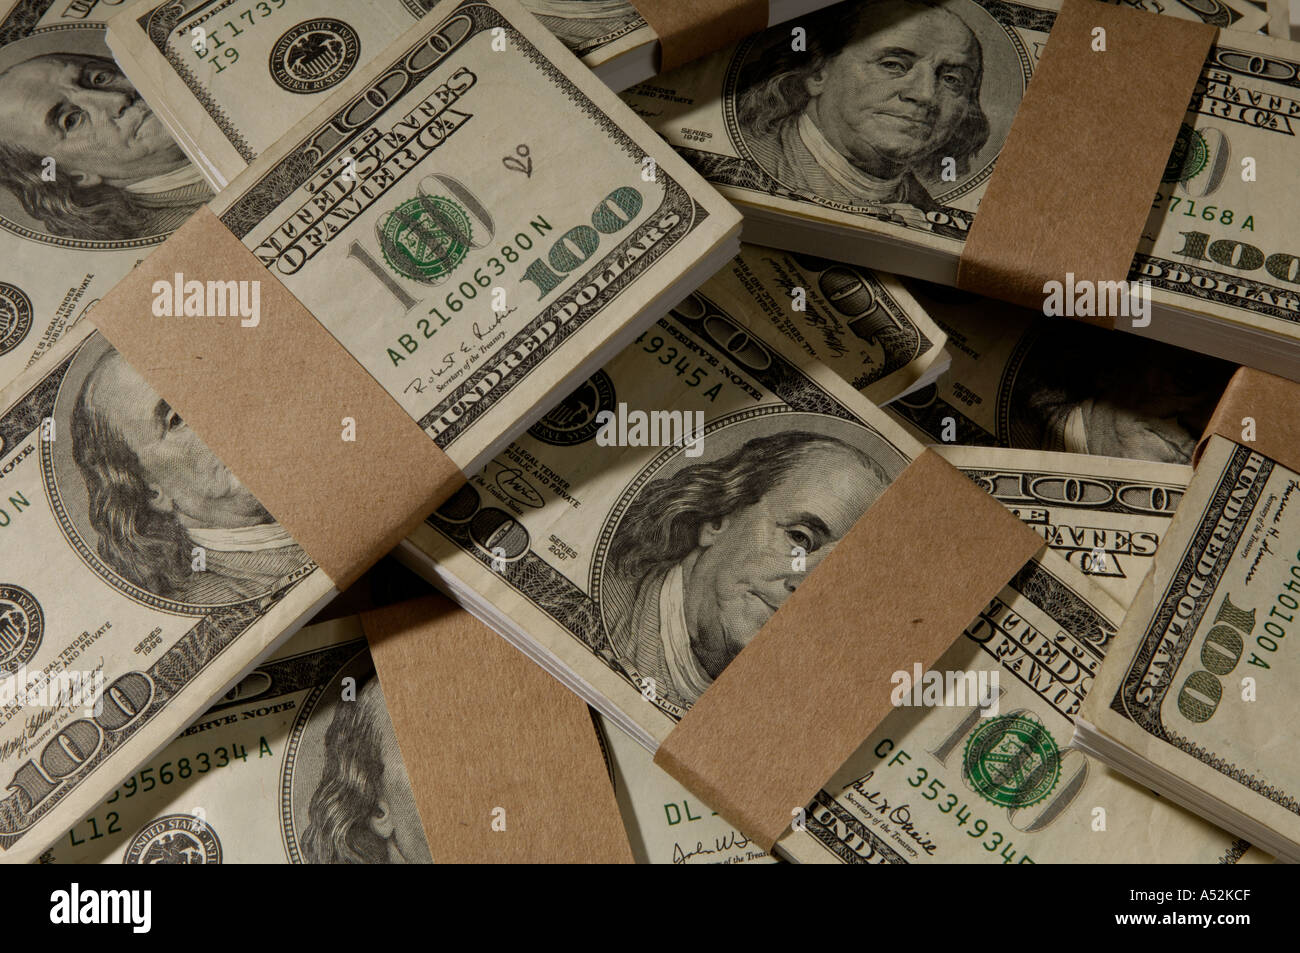 stacks of 100 dollar bills US - Stock Image